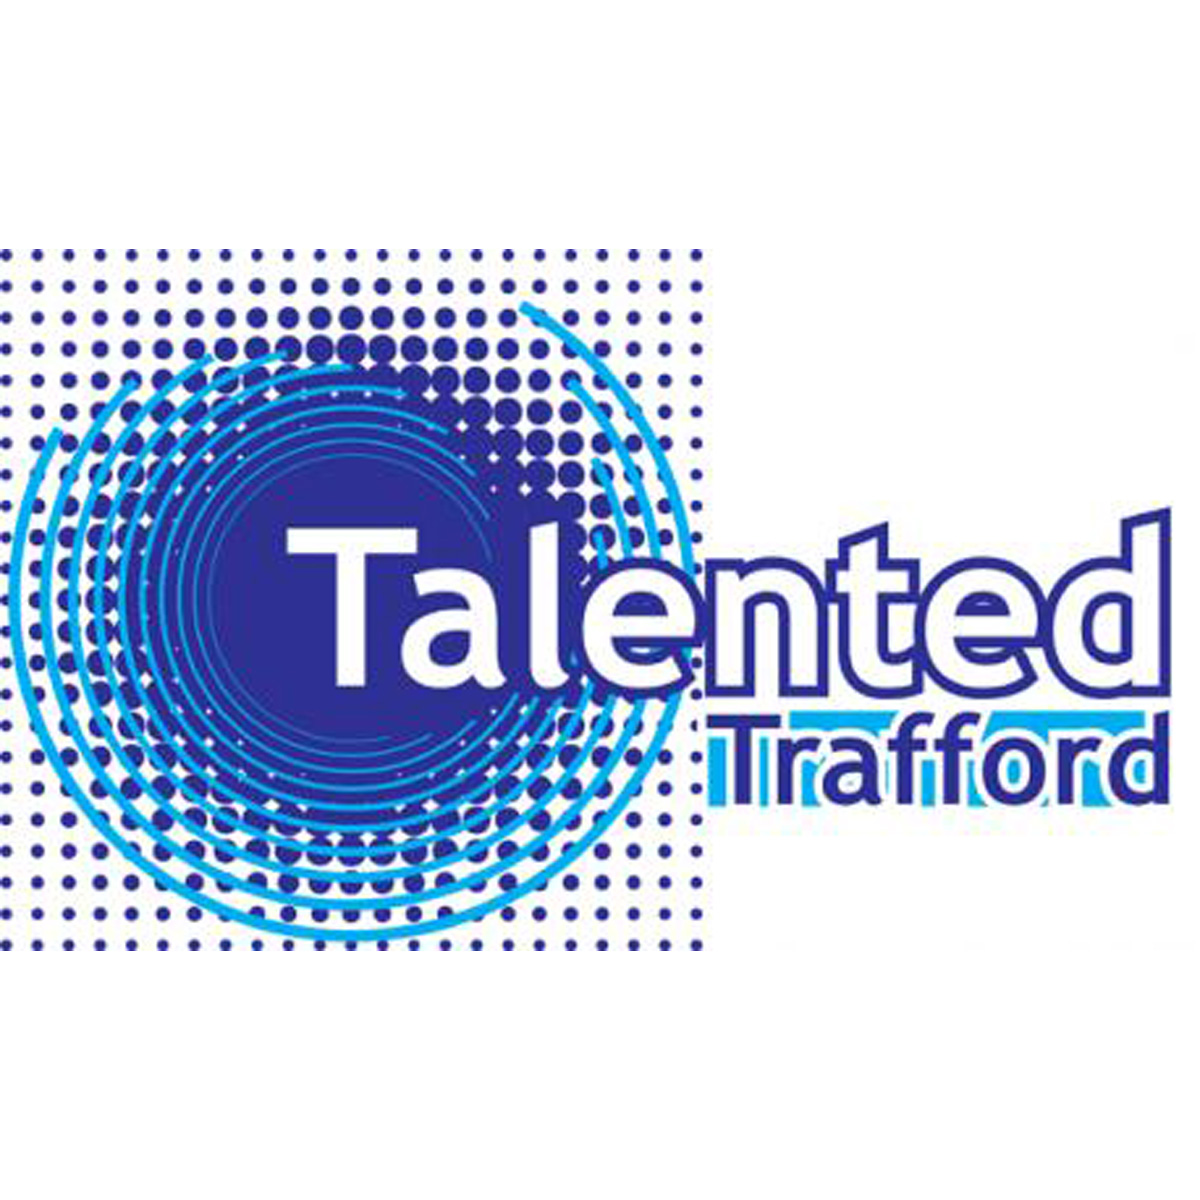 Finalists of Talented Trafford announced